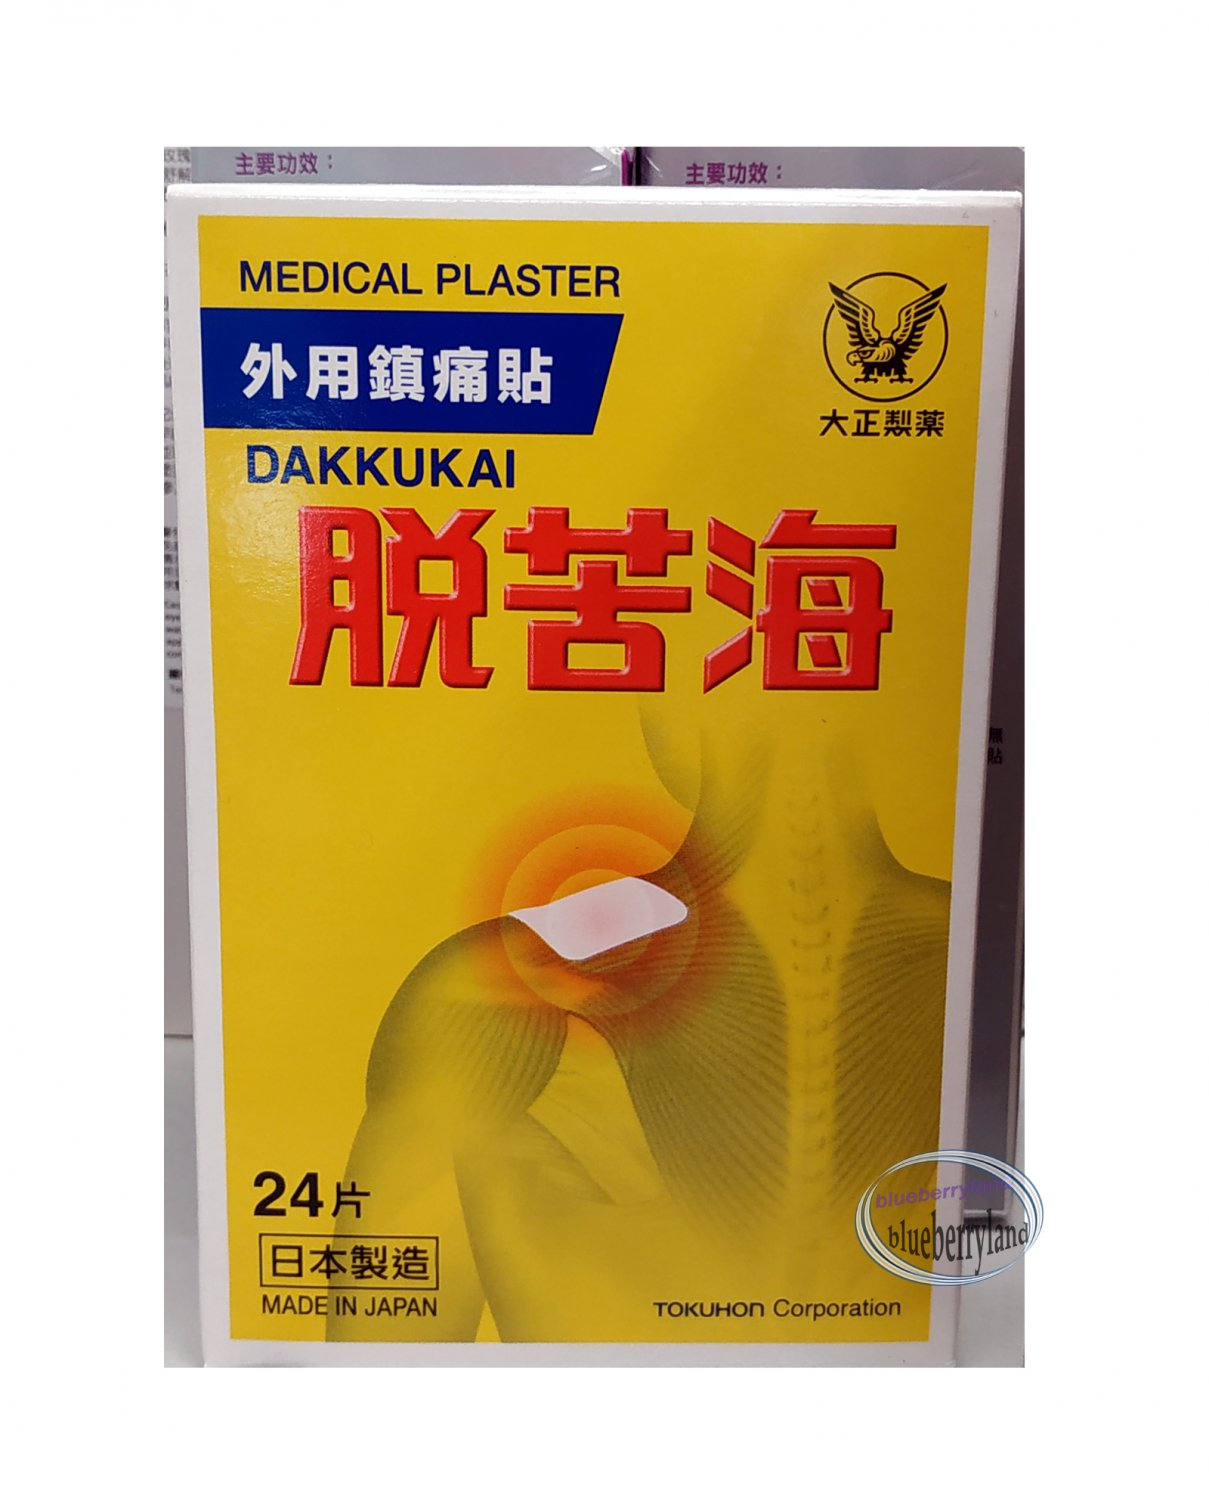 Japan Tokuhon Medical Plasters 24 Pcs pain relief patches